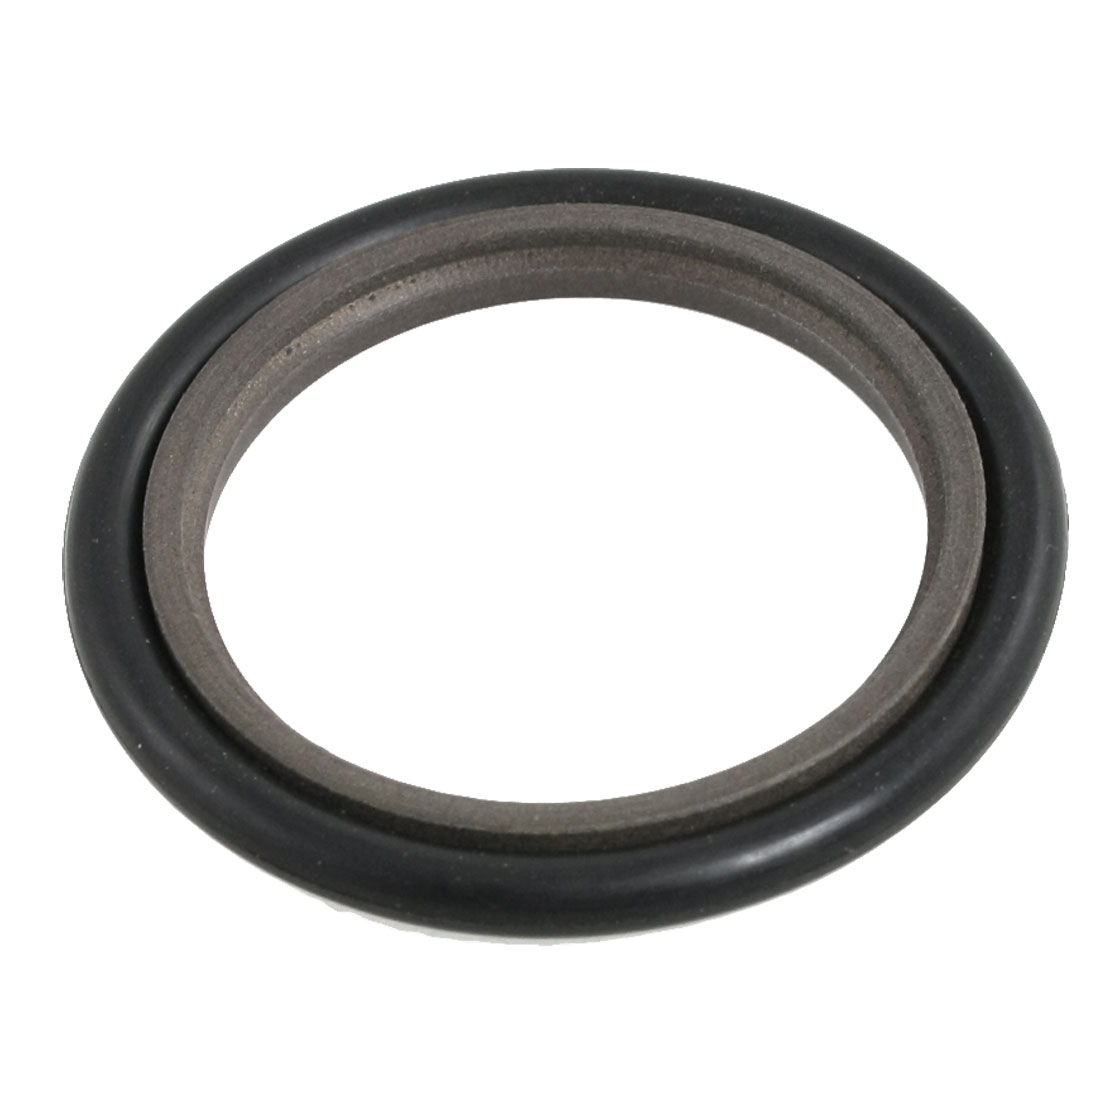 NBR PTFE Hydraulic Cylinder Rod Step Seal Ring 44x60.7x5mm